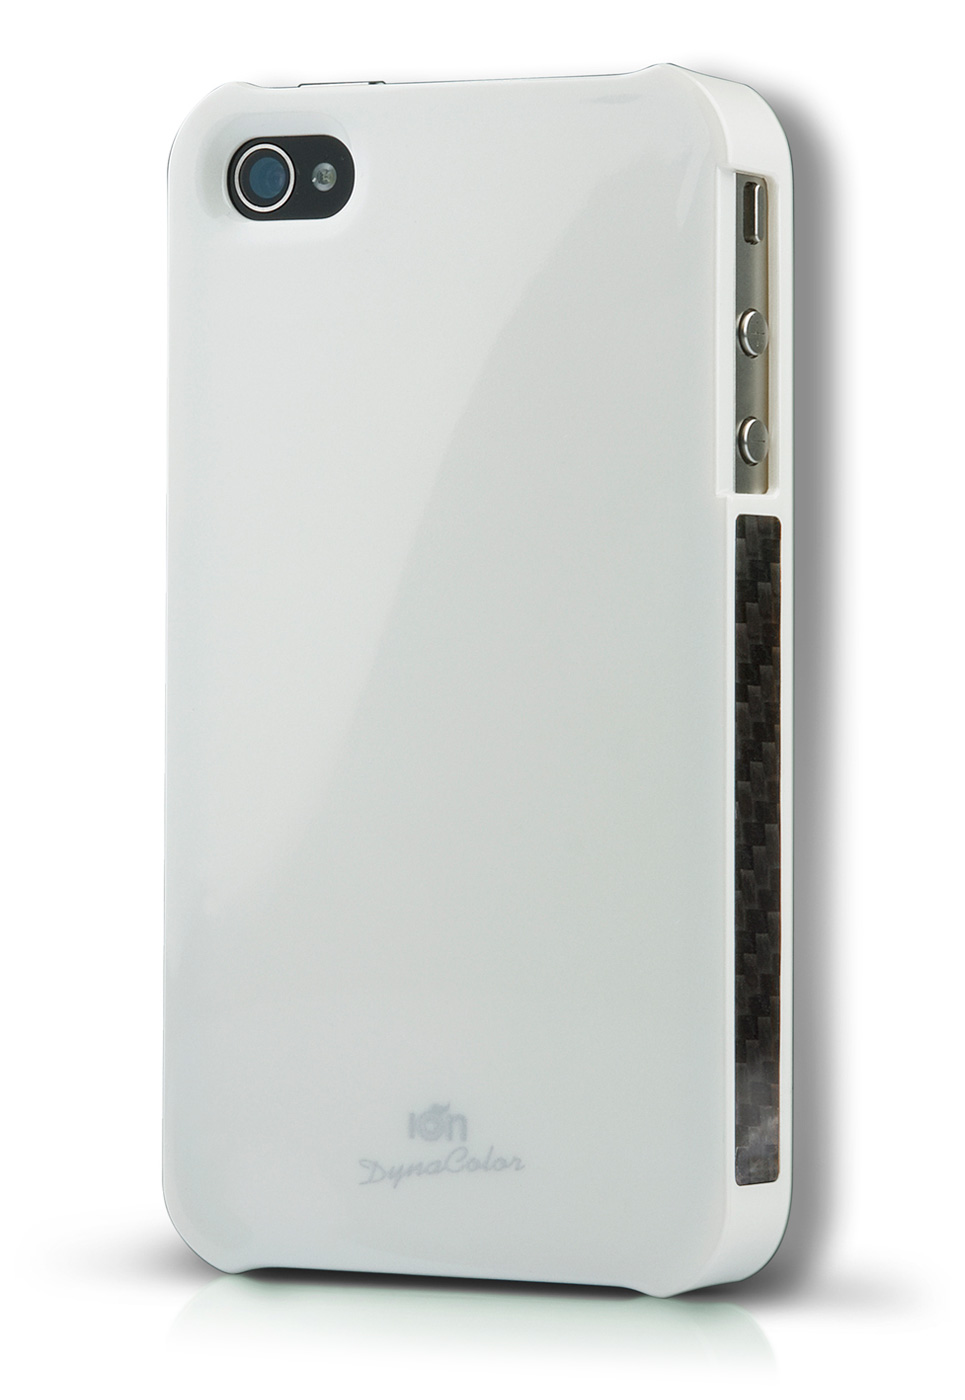 White DynaColor Lacquer iPhone 4S Case